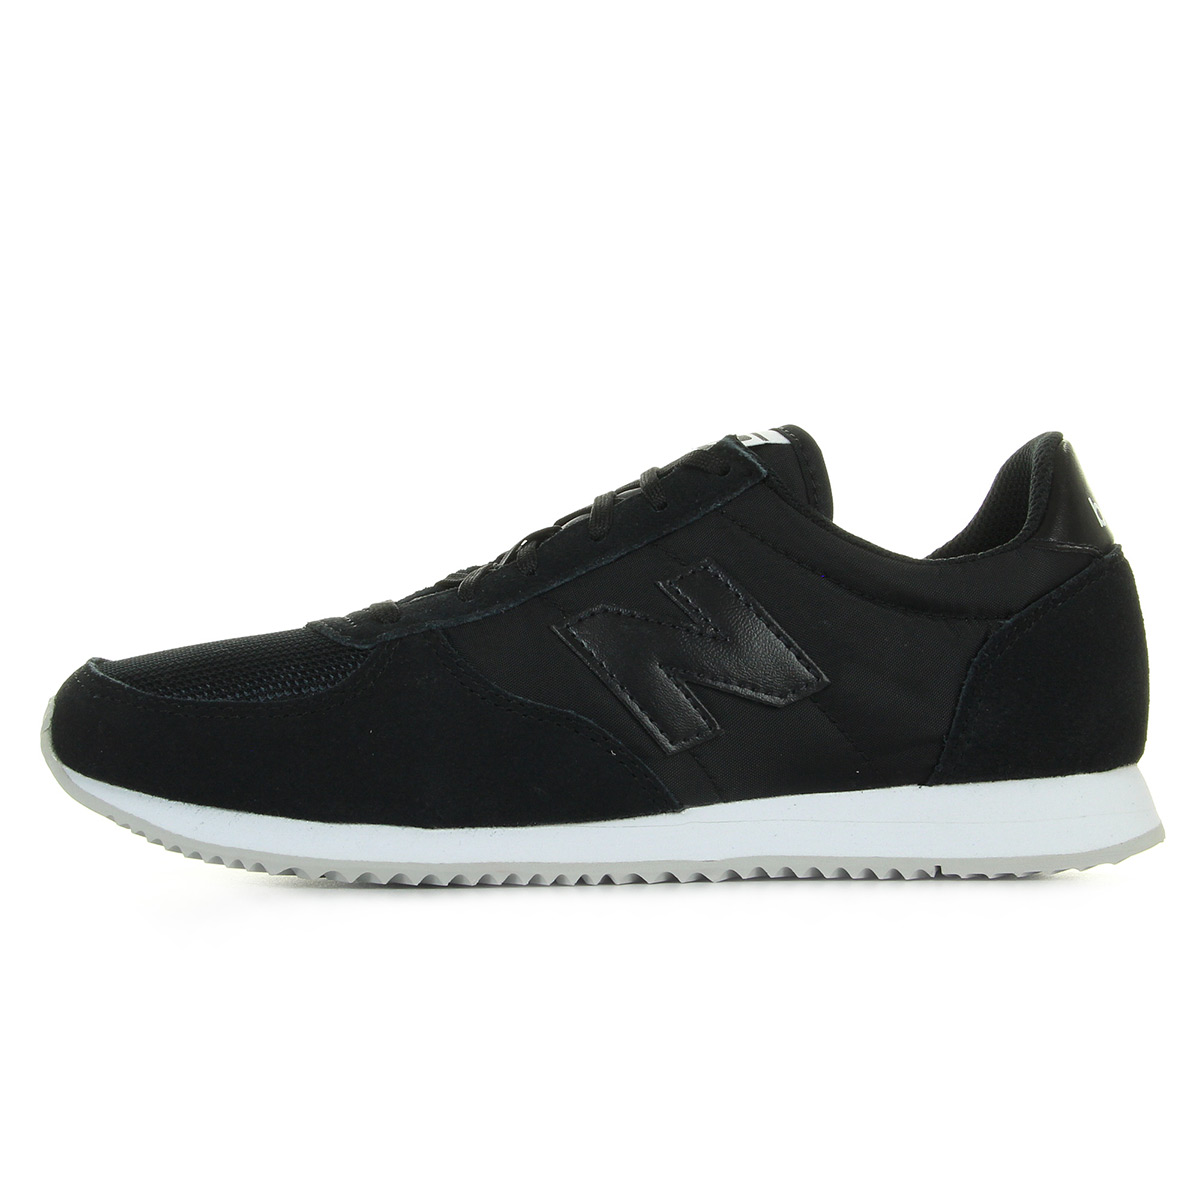 Baskets New Balance WL220 BK r8Cvg